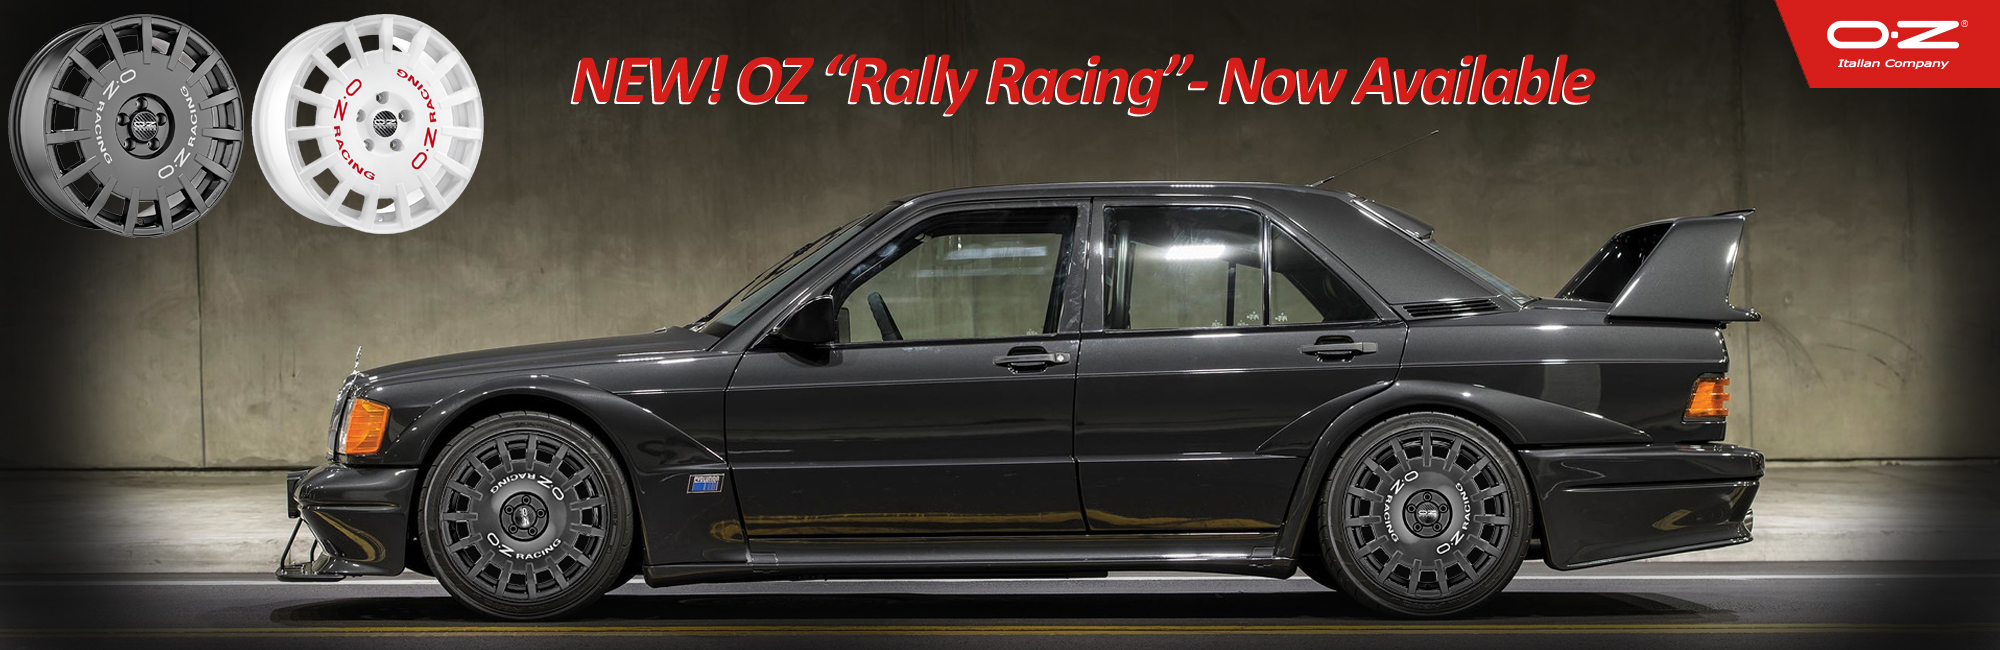 OZ-Rally-Racing_03